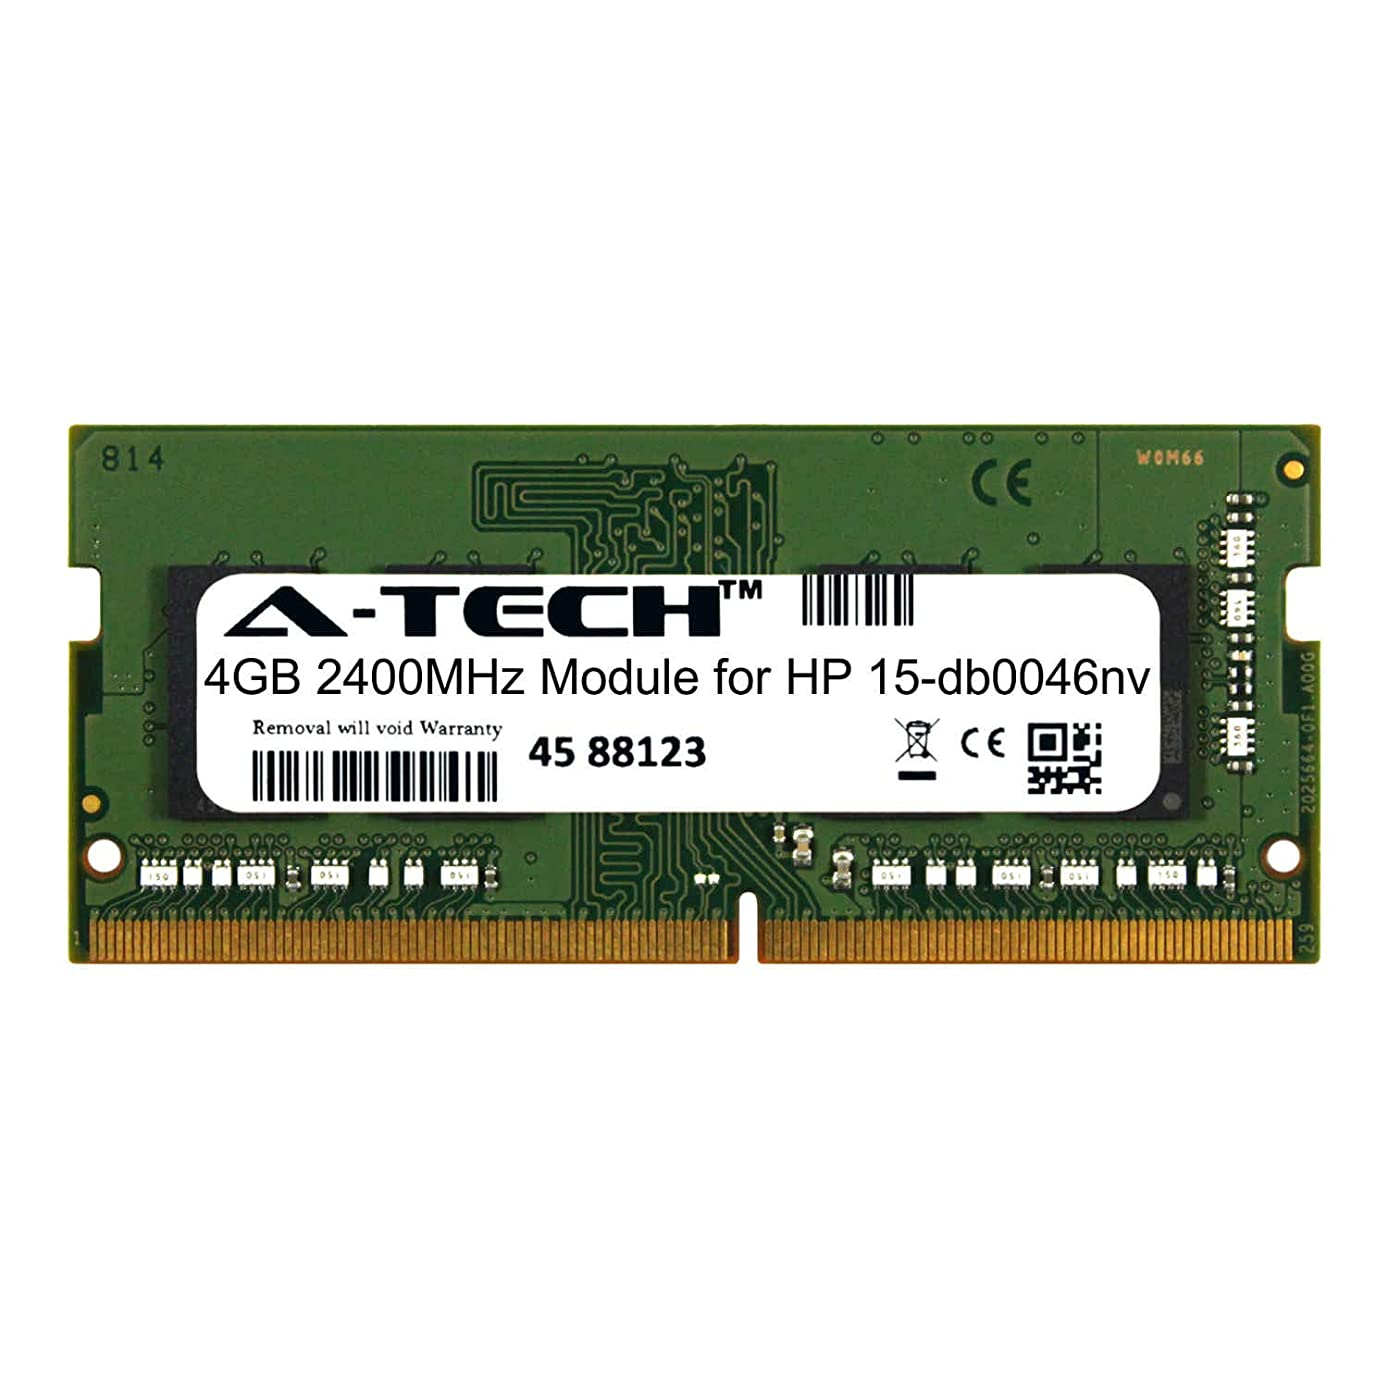 A-Tech 4GB Module for HP 15-db0046nv Laptop & Notebook Compatible DDR4 2400Mhz Memory Ram (ATMS381974A25824X1)